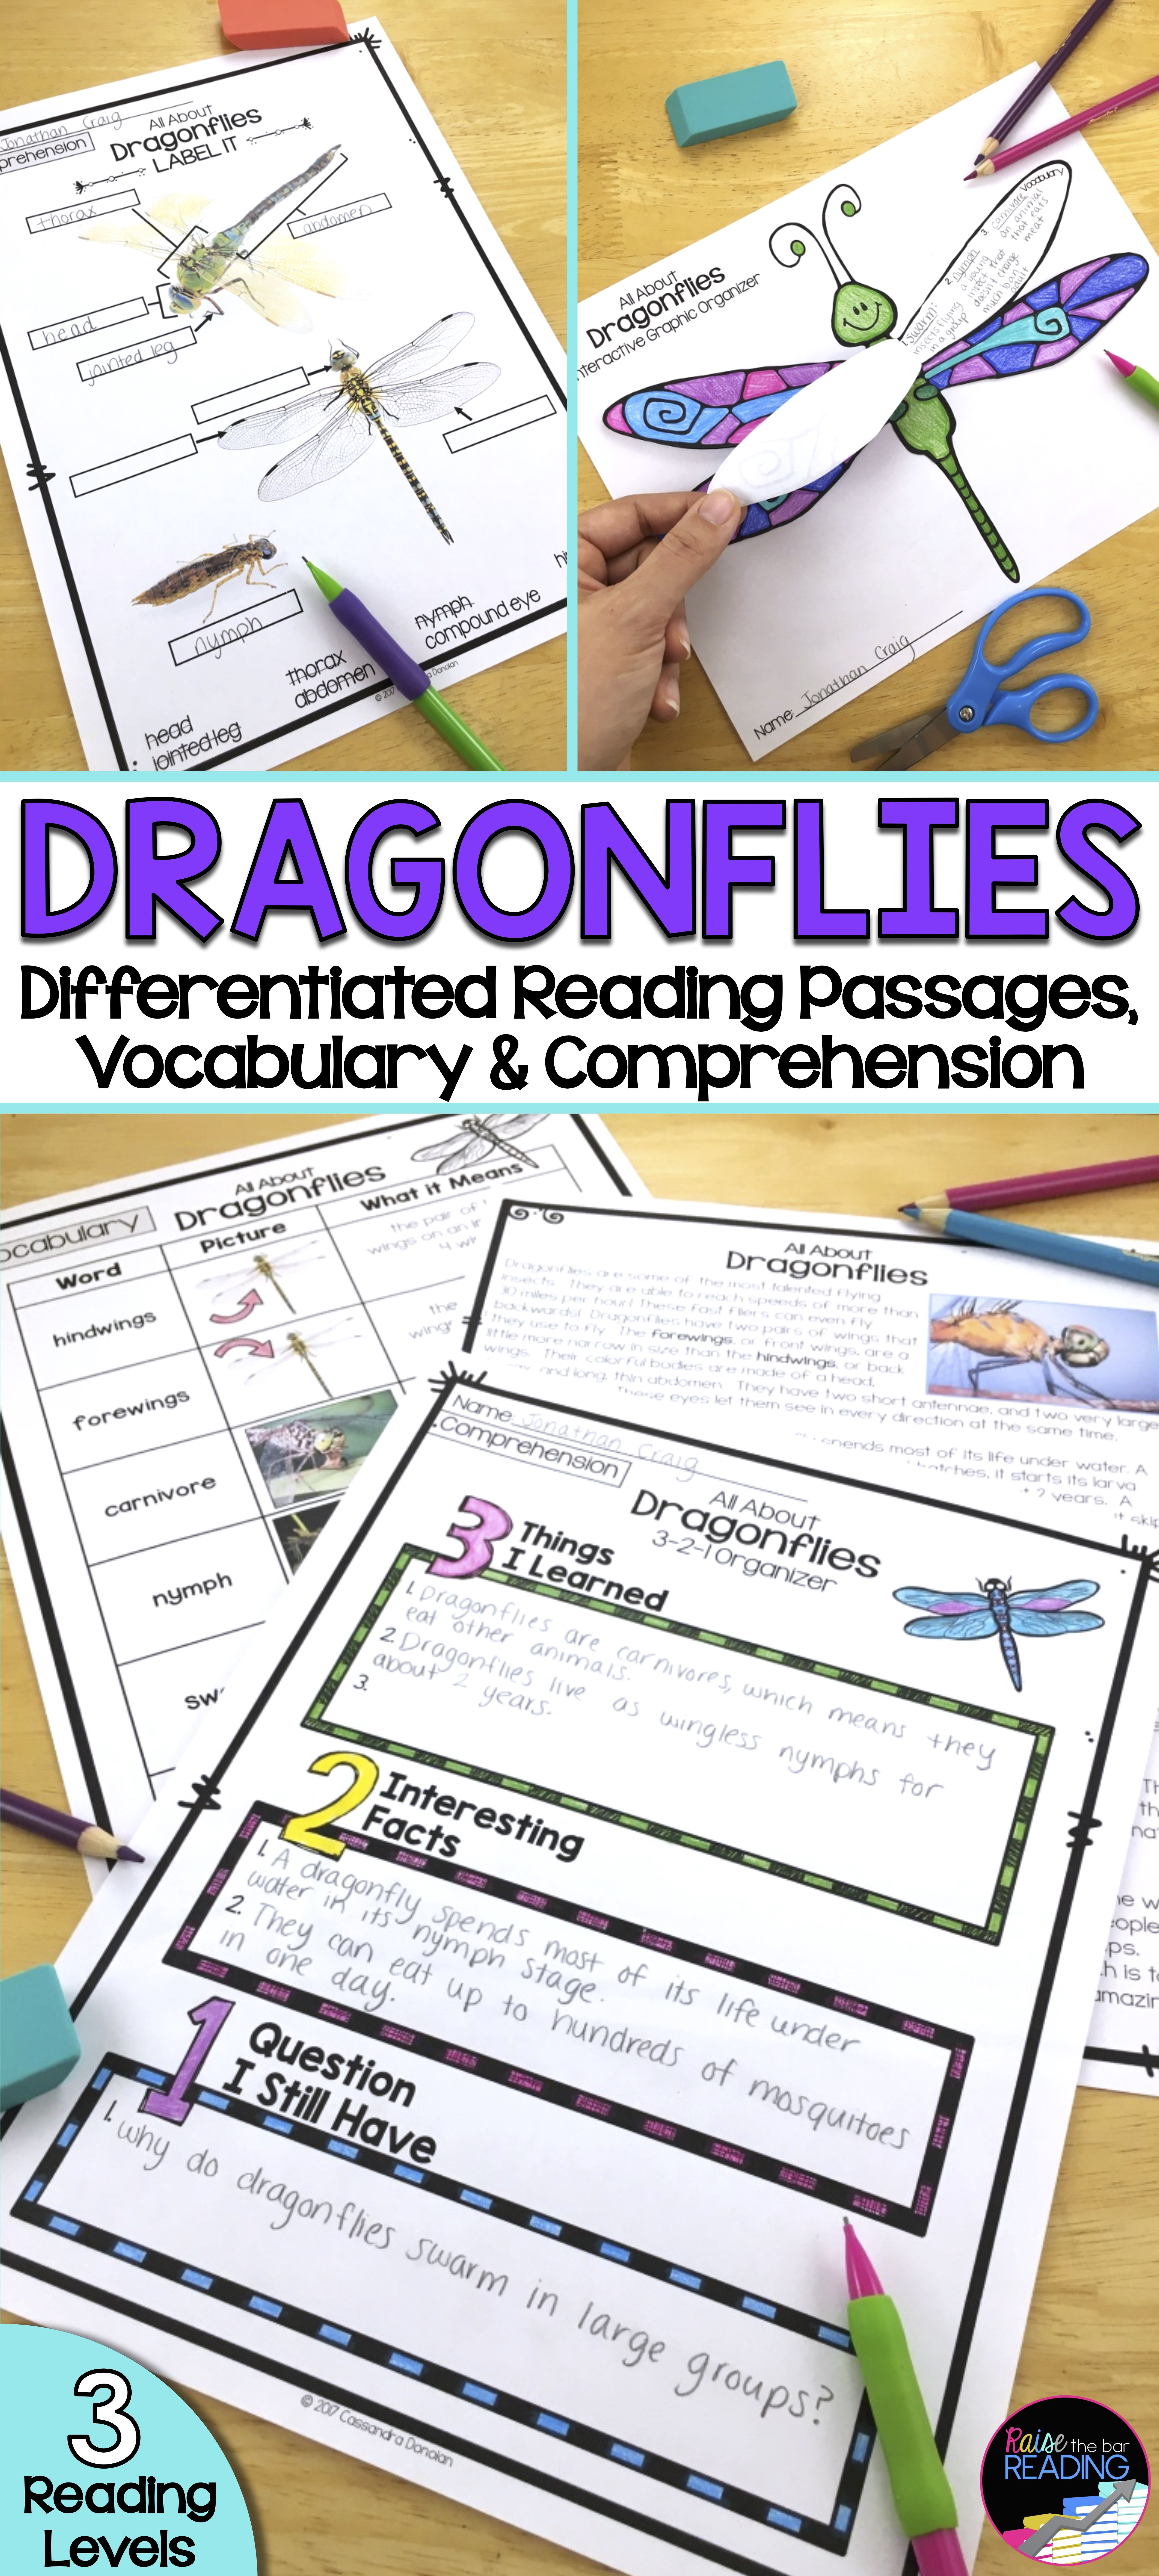 Insects Activity Dragonflies Reading Passages Vocabulary Comprehension Reading Passages Differentiated Reading Passages Teaching Third Grade Reading [ 10000 x 4500 Pixel ]